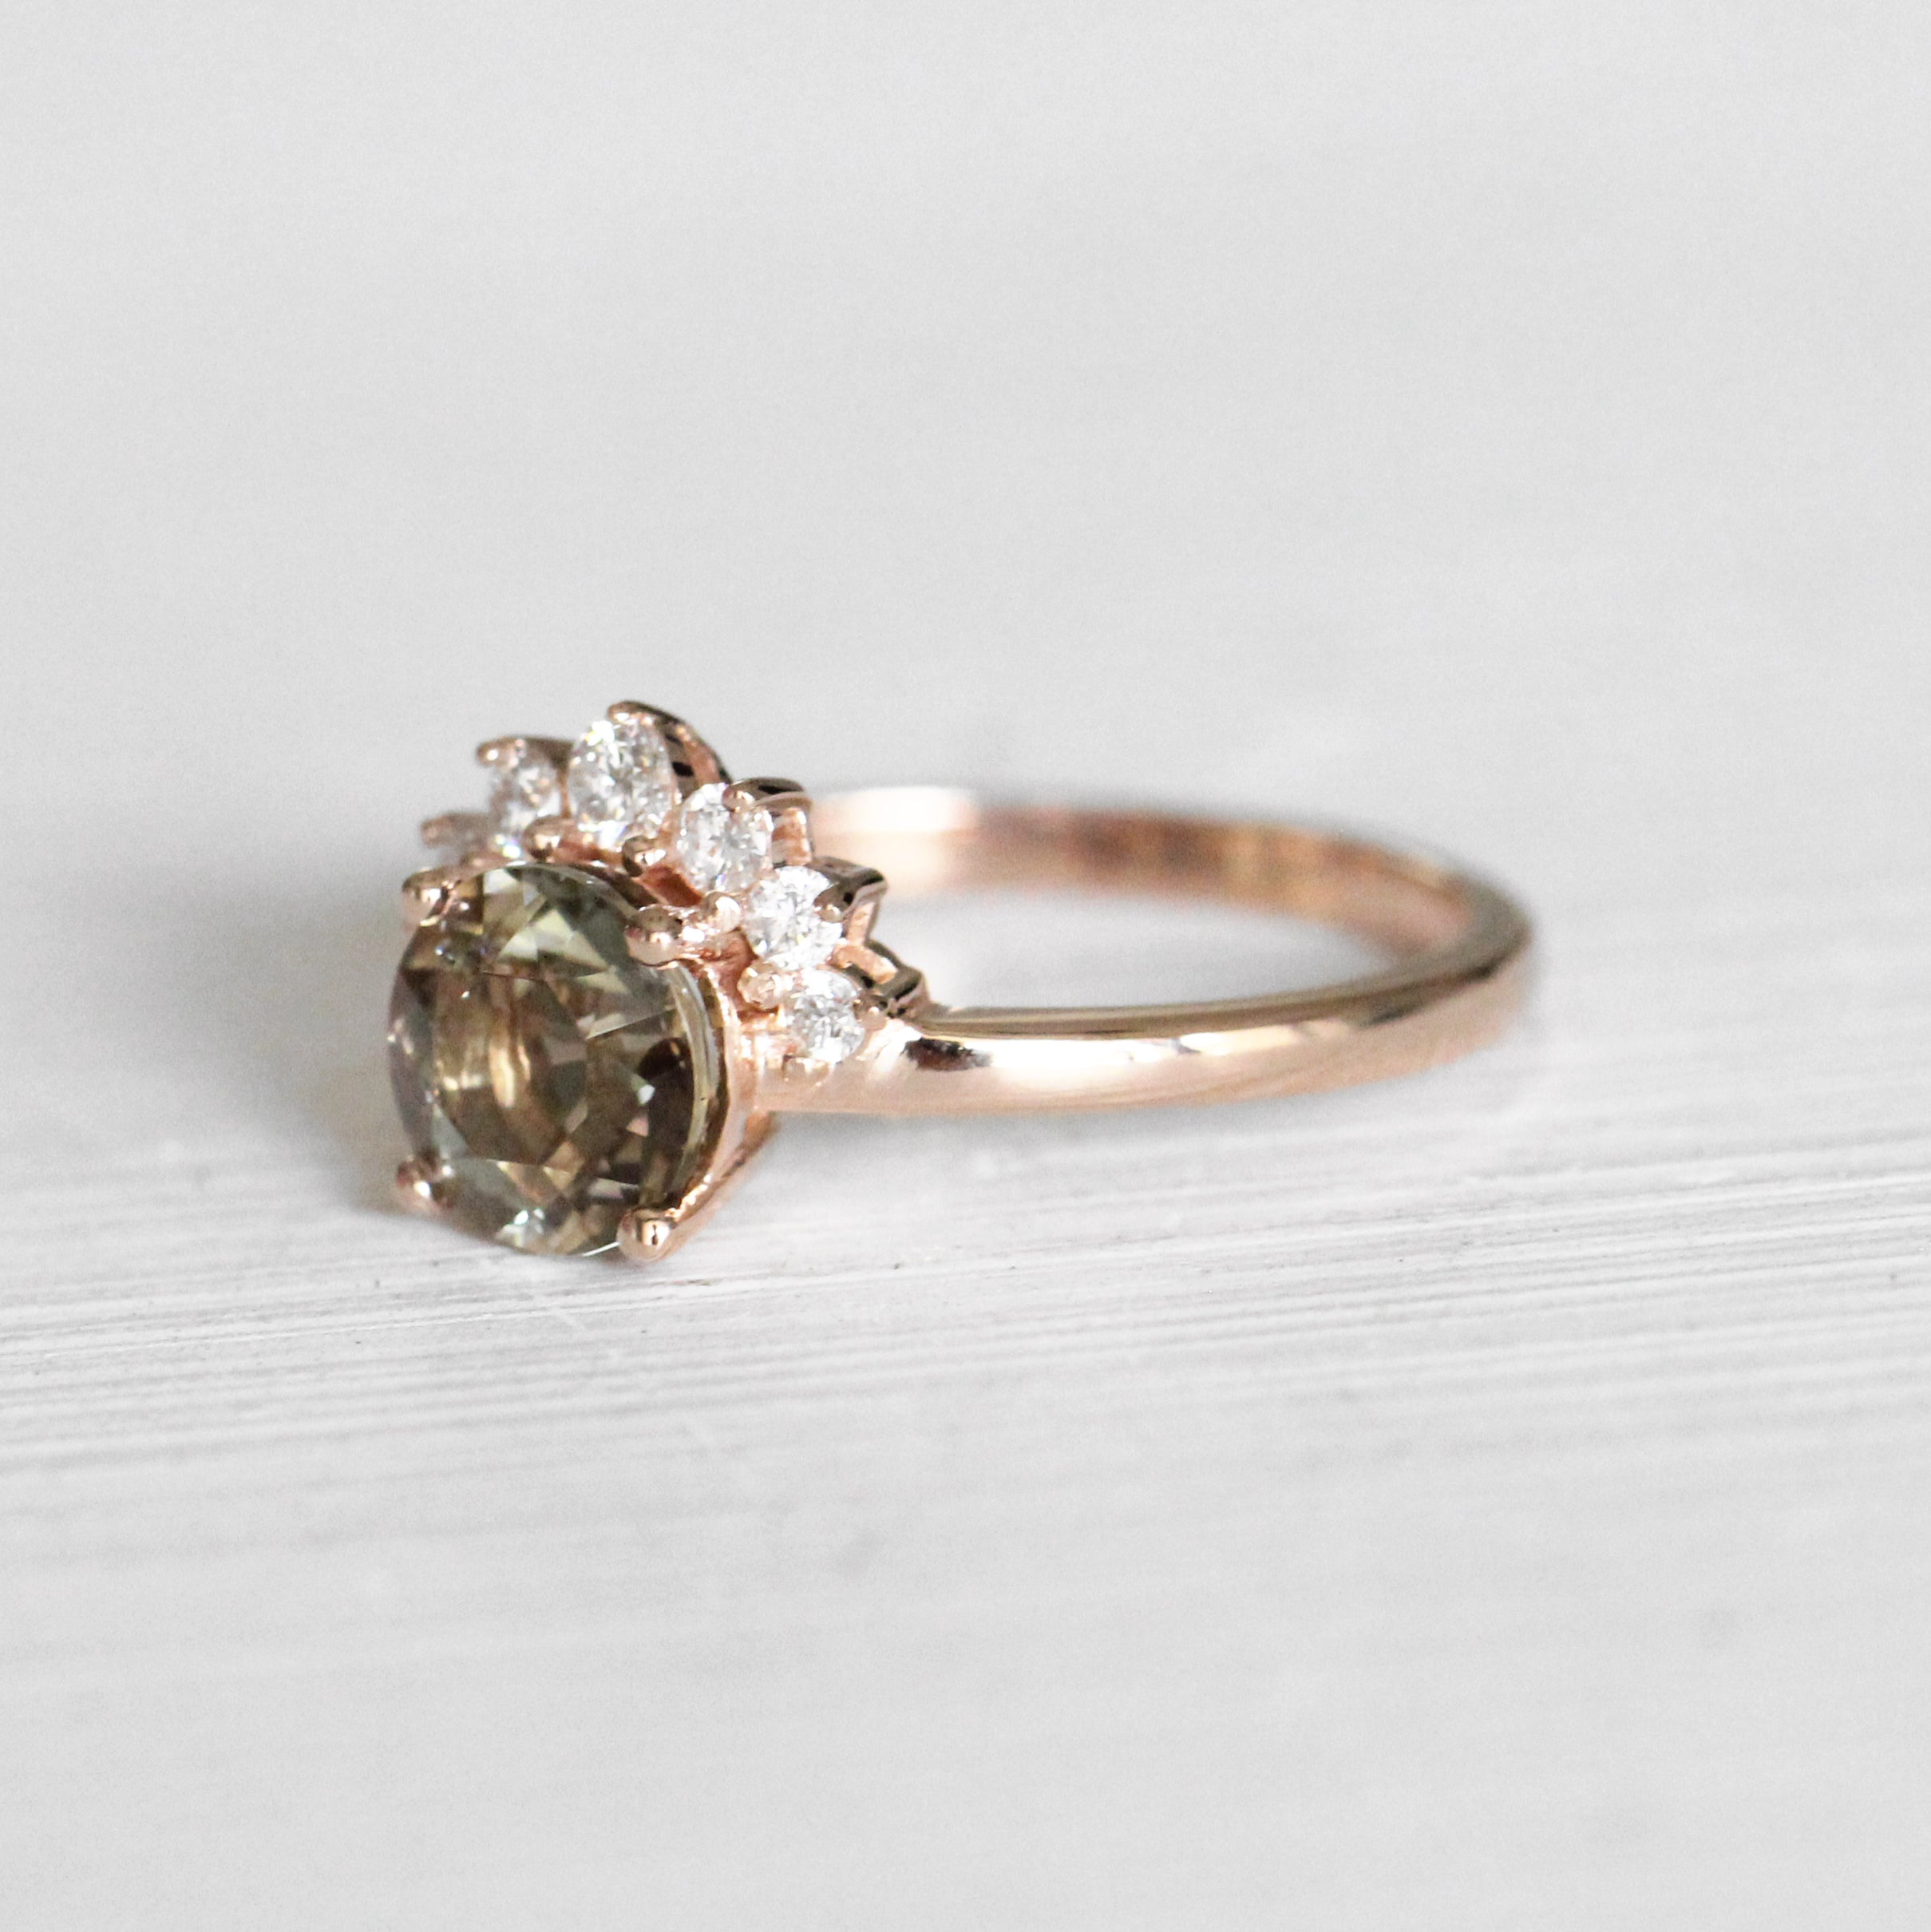 Blythe Ring with Champagne Green Oregon Sunstone in 10k Rose Gold - Ready to Size and Ship - Celestial Diamonds ® by Midwinter Co.